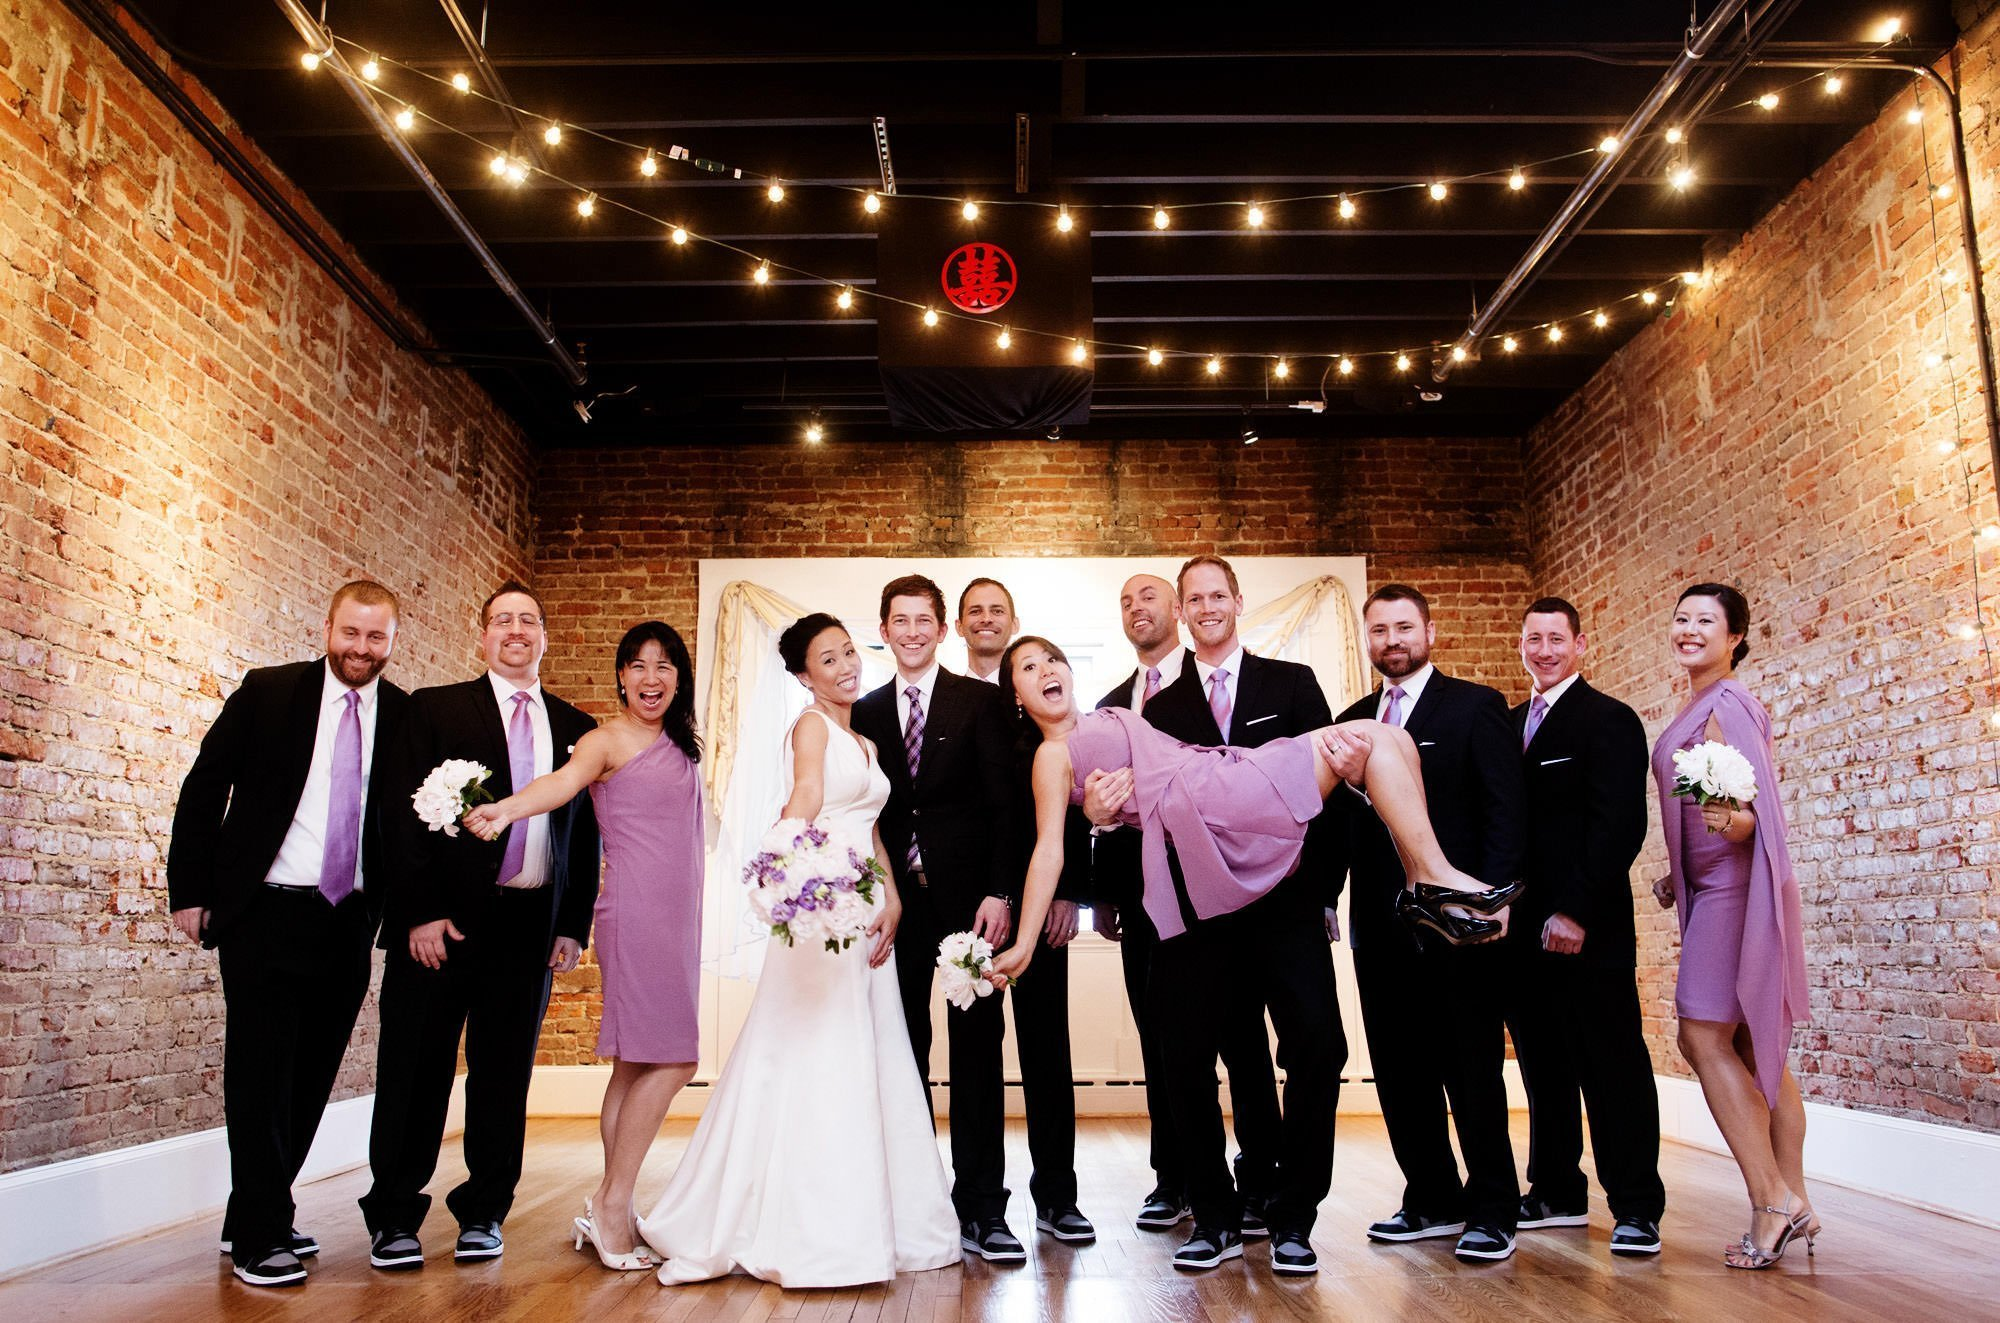 The wedding party poses at Epic Yoga Studio on the wedding day.